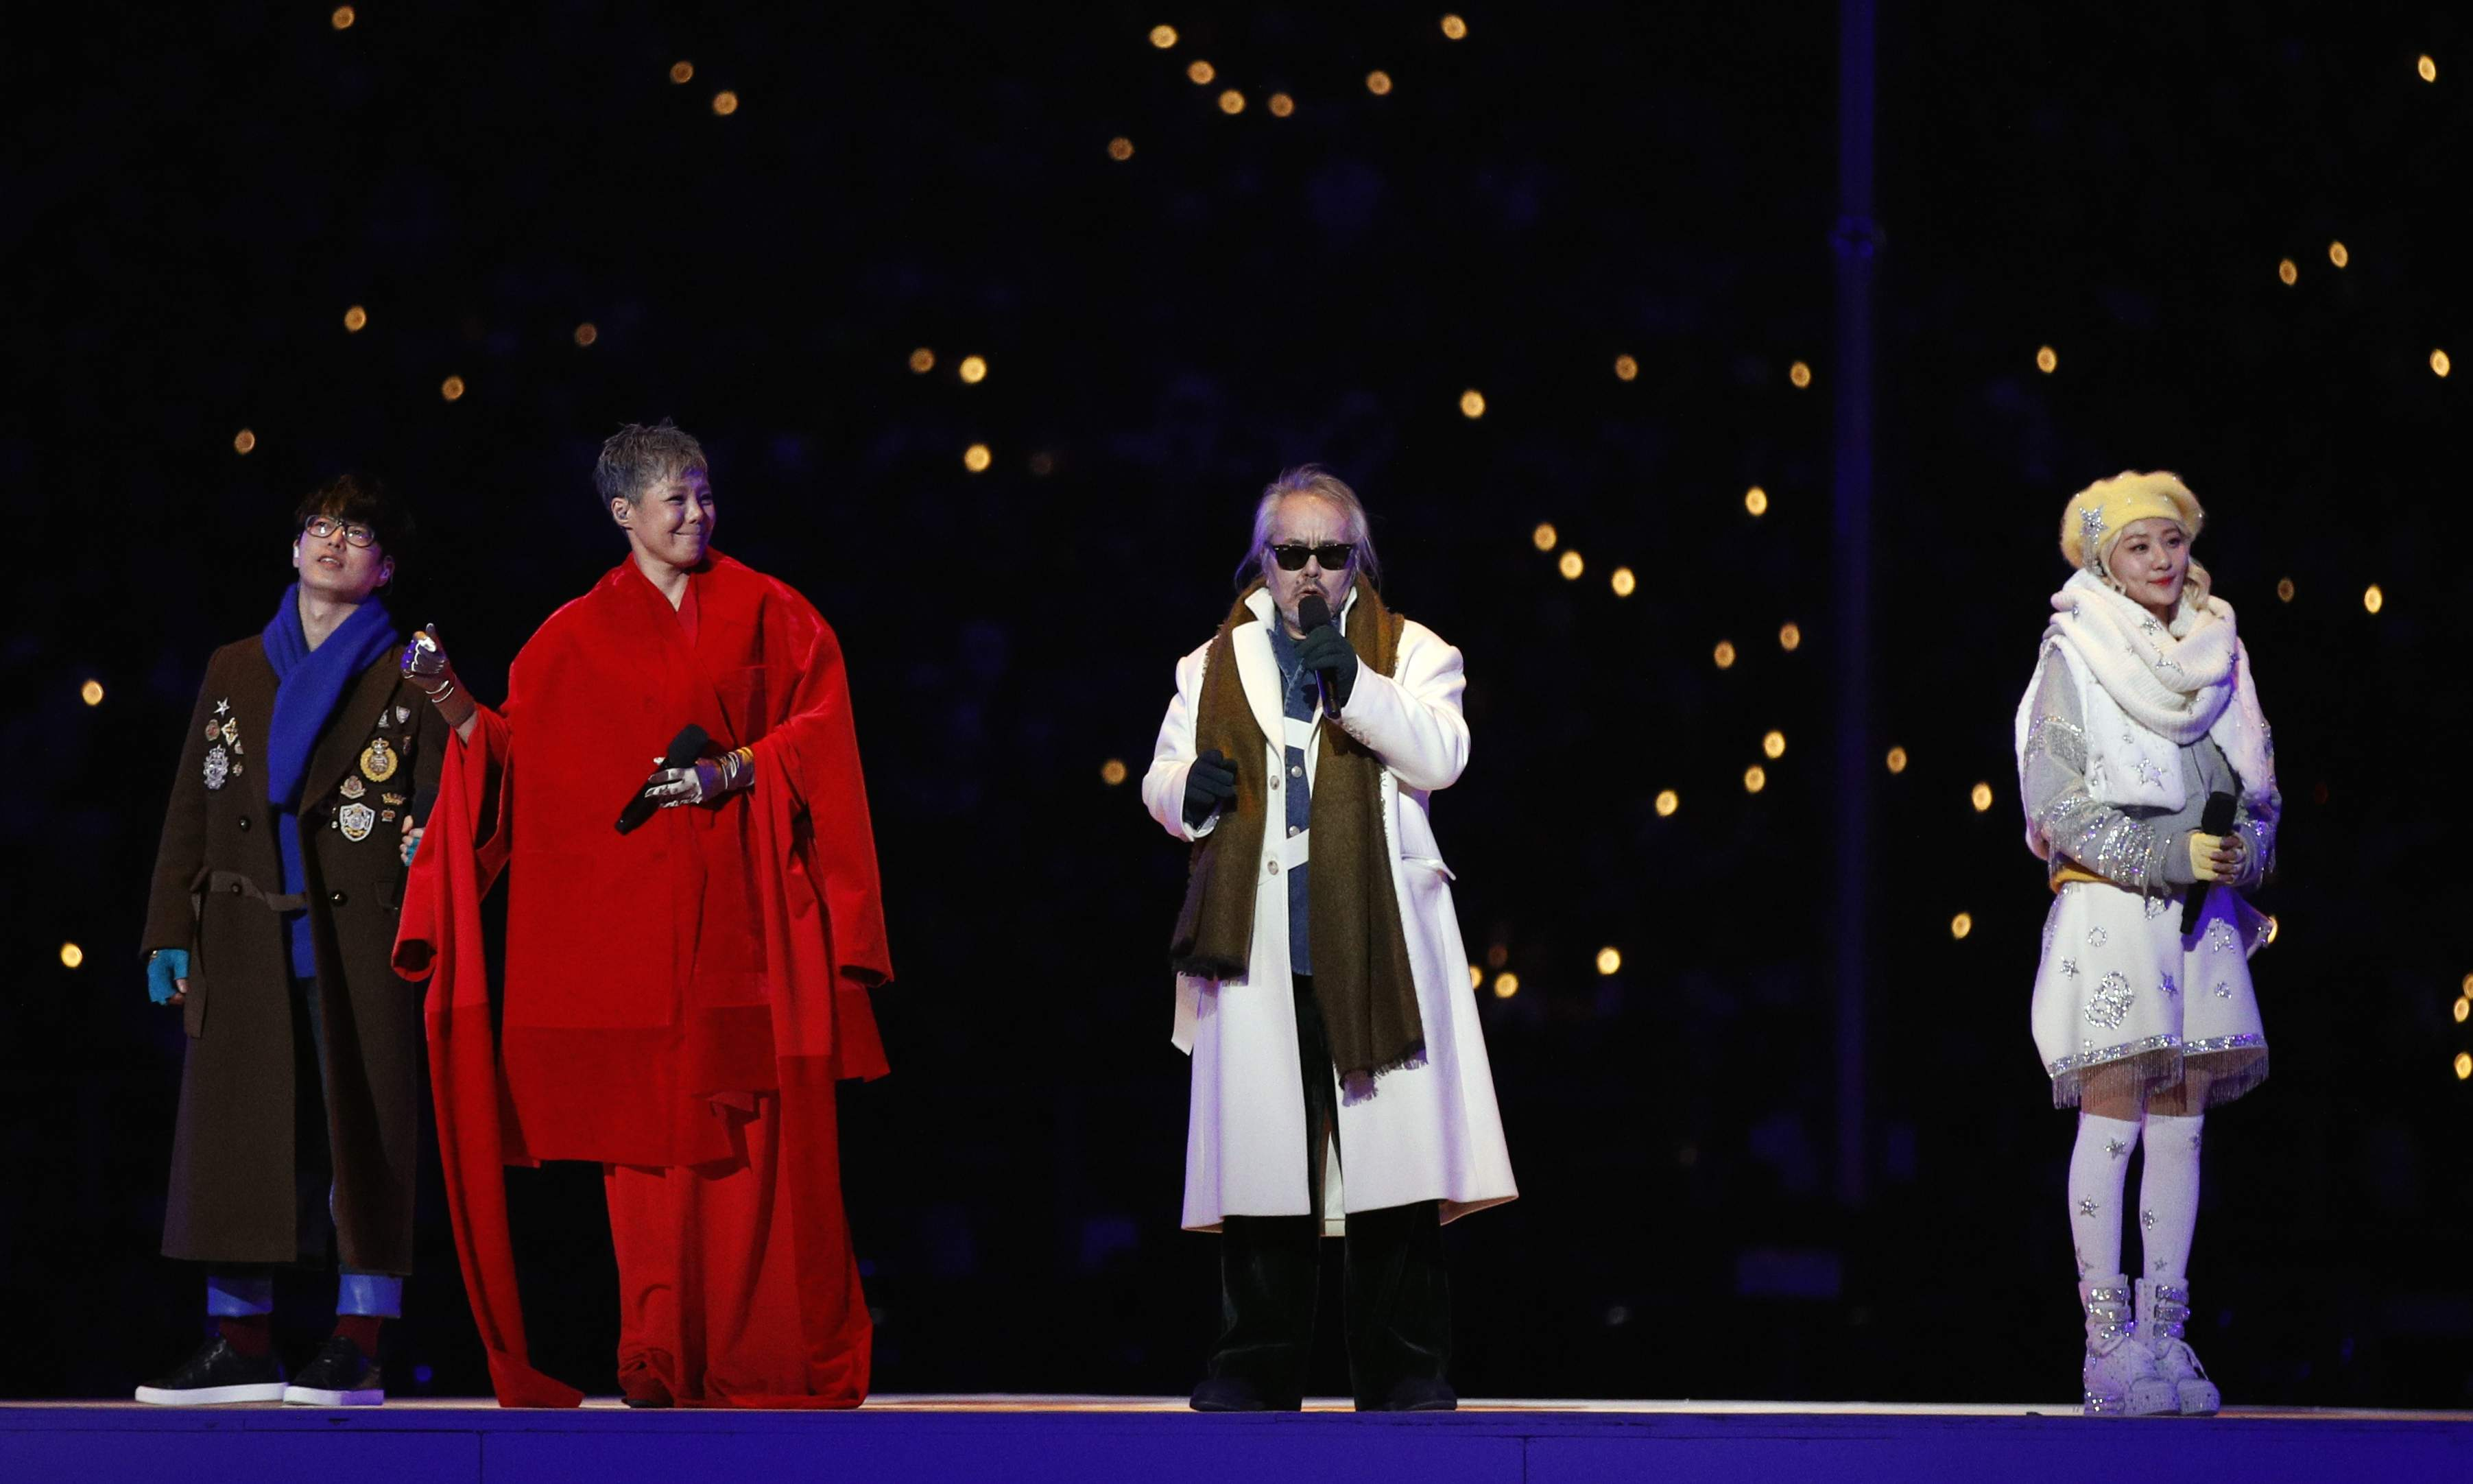 Singers from left Ha Hyun-woo, Lee Eun-mi, Jeon In-kwon and Ahn Ji-young perform during the opening ceremony of the 2018 Winter Olympics in Pyeongchang, South Korea, Friday, Feb. 9, 2018. (AP Photo/Jae C. Hong)